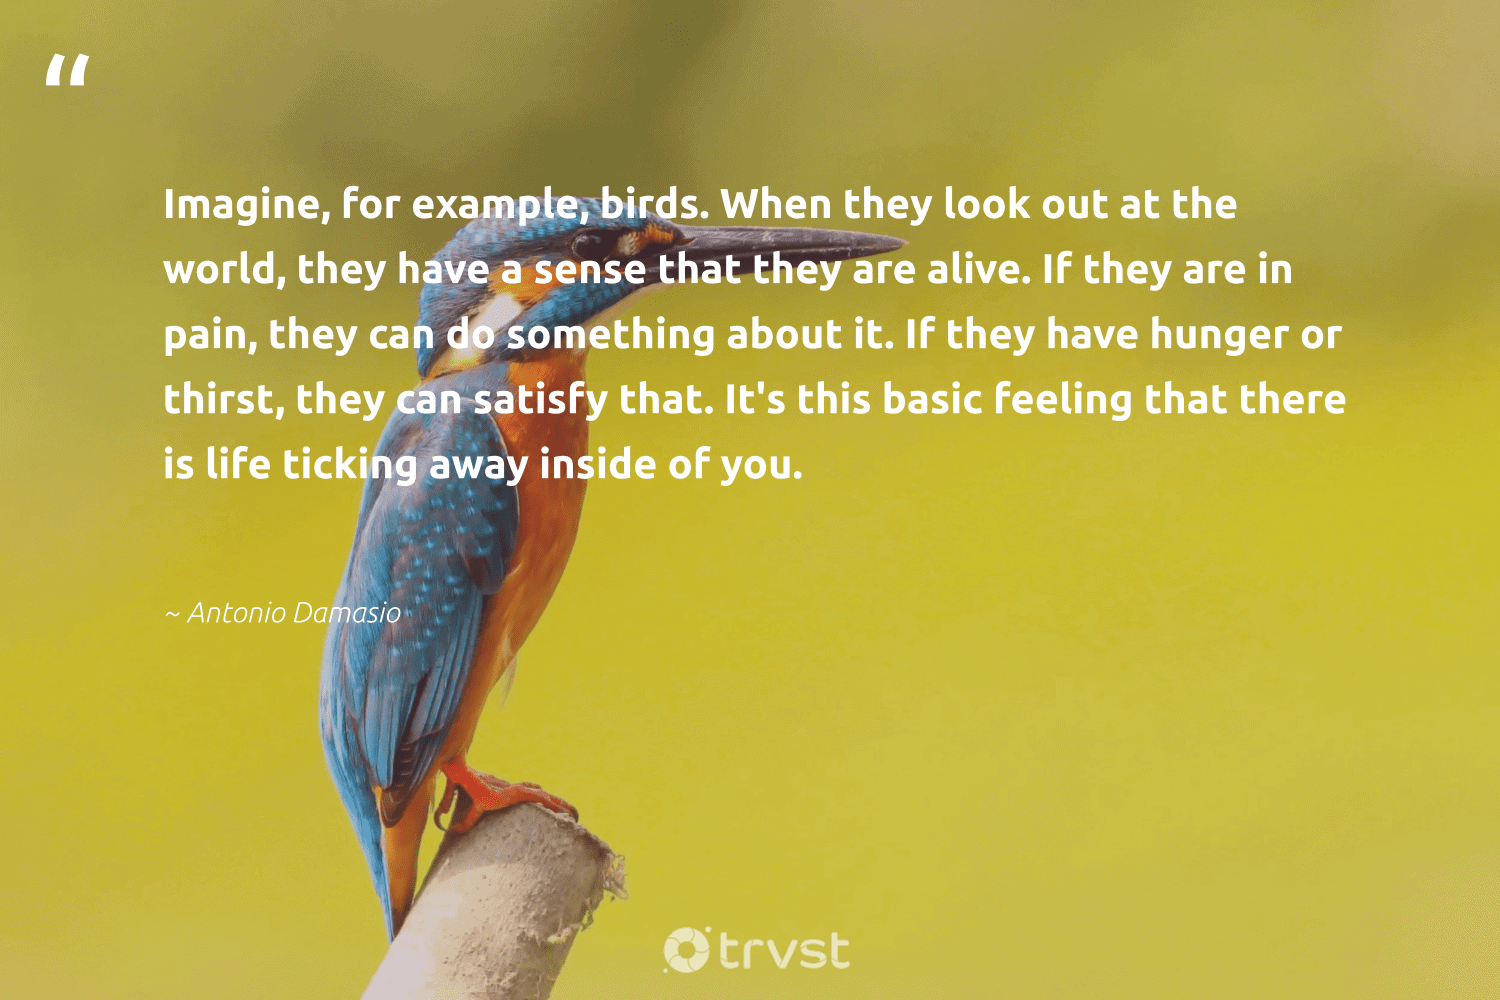 """""""Imagine, for example, birds. When they look out at the world, they have a sense that they are alive. If they are in pain, they can do something about it. If they have hunger or thirst, they can satisfy that. It's this basic feeling that there is life ticking away inside of you.""""  - Antonio Damasio #trvst #quotes #dosomething #birds #hunger #bird #geology #bethechange #natural #thinkgreen #forscience #dogood"""